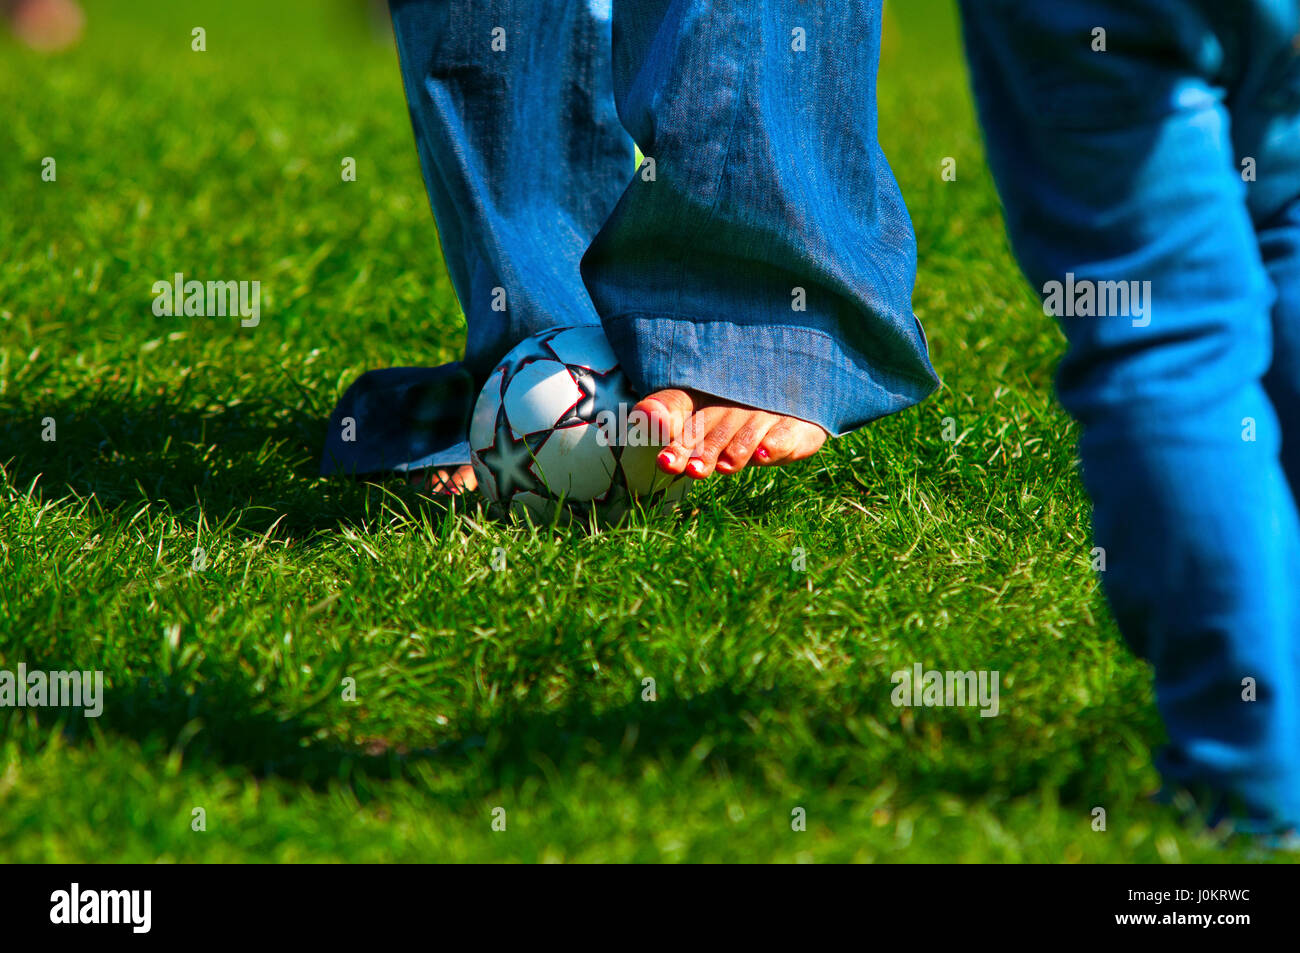 A person playing with a small soccer ball. - Stock Image